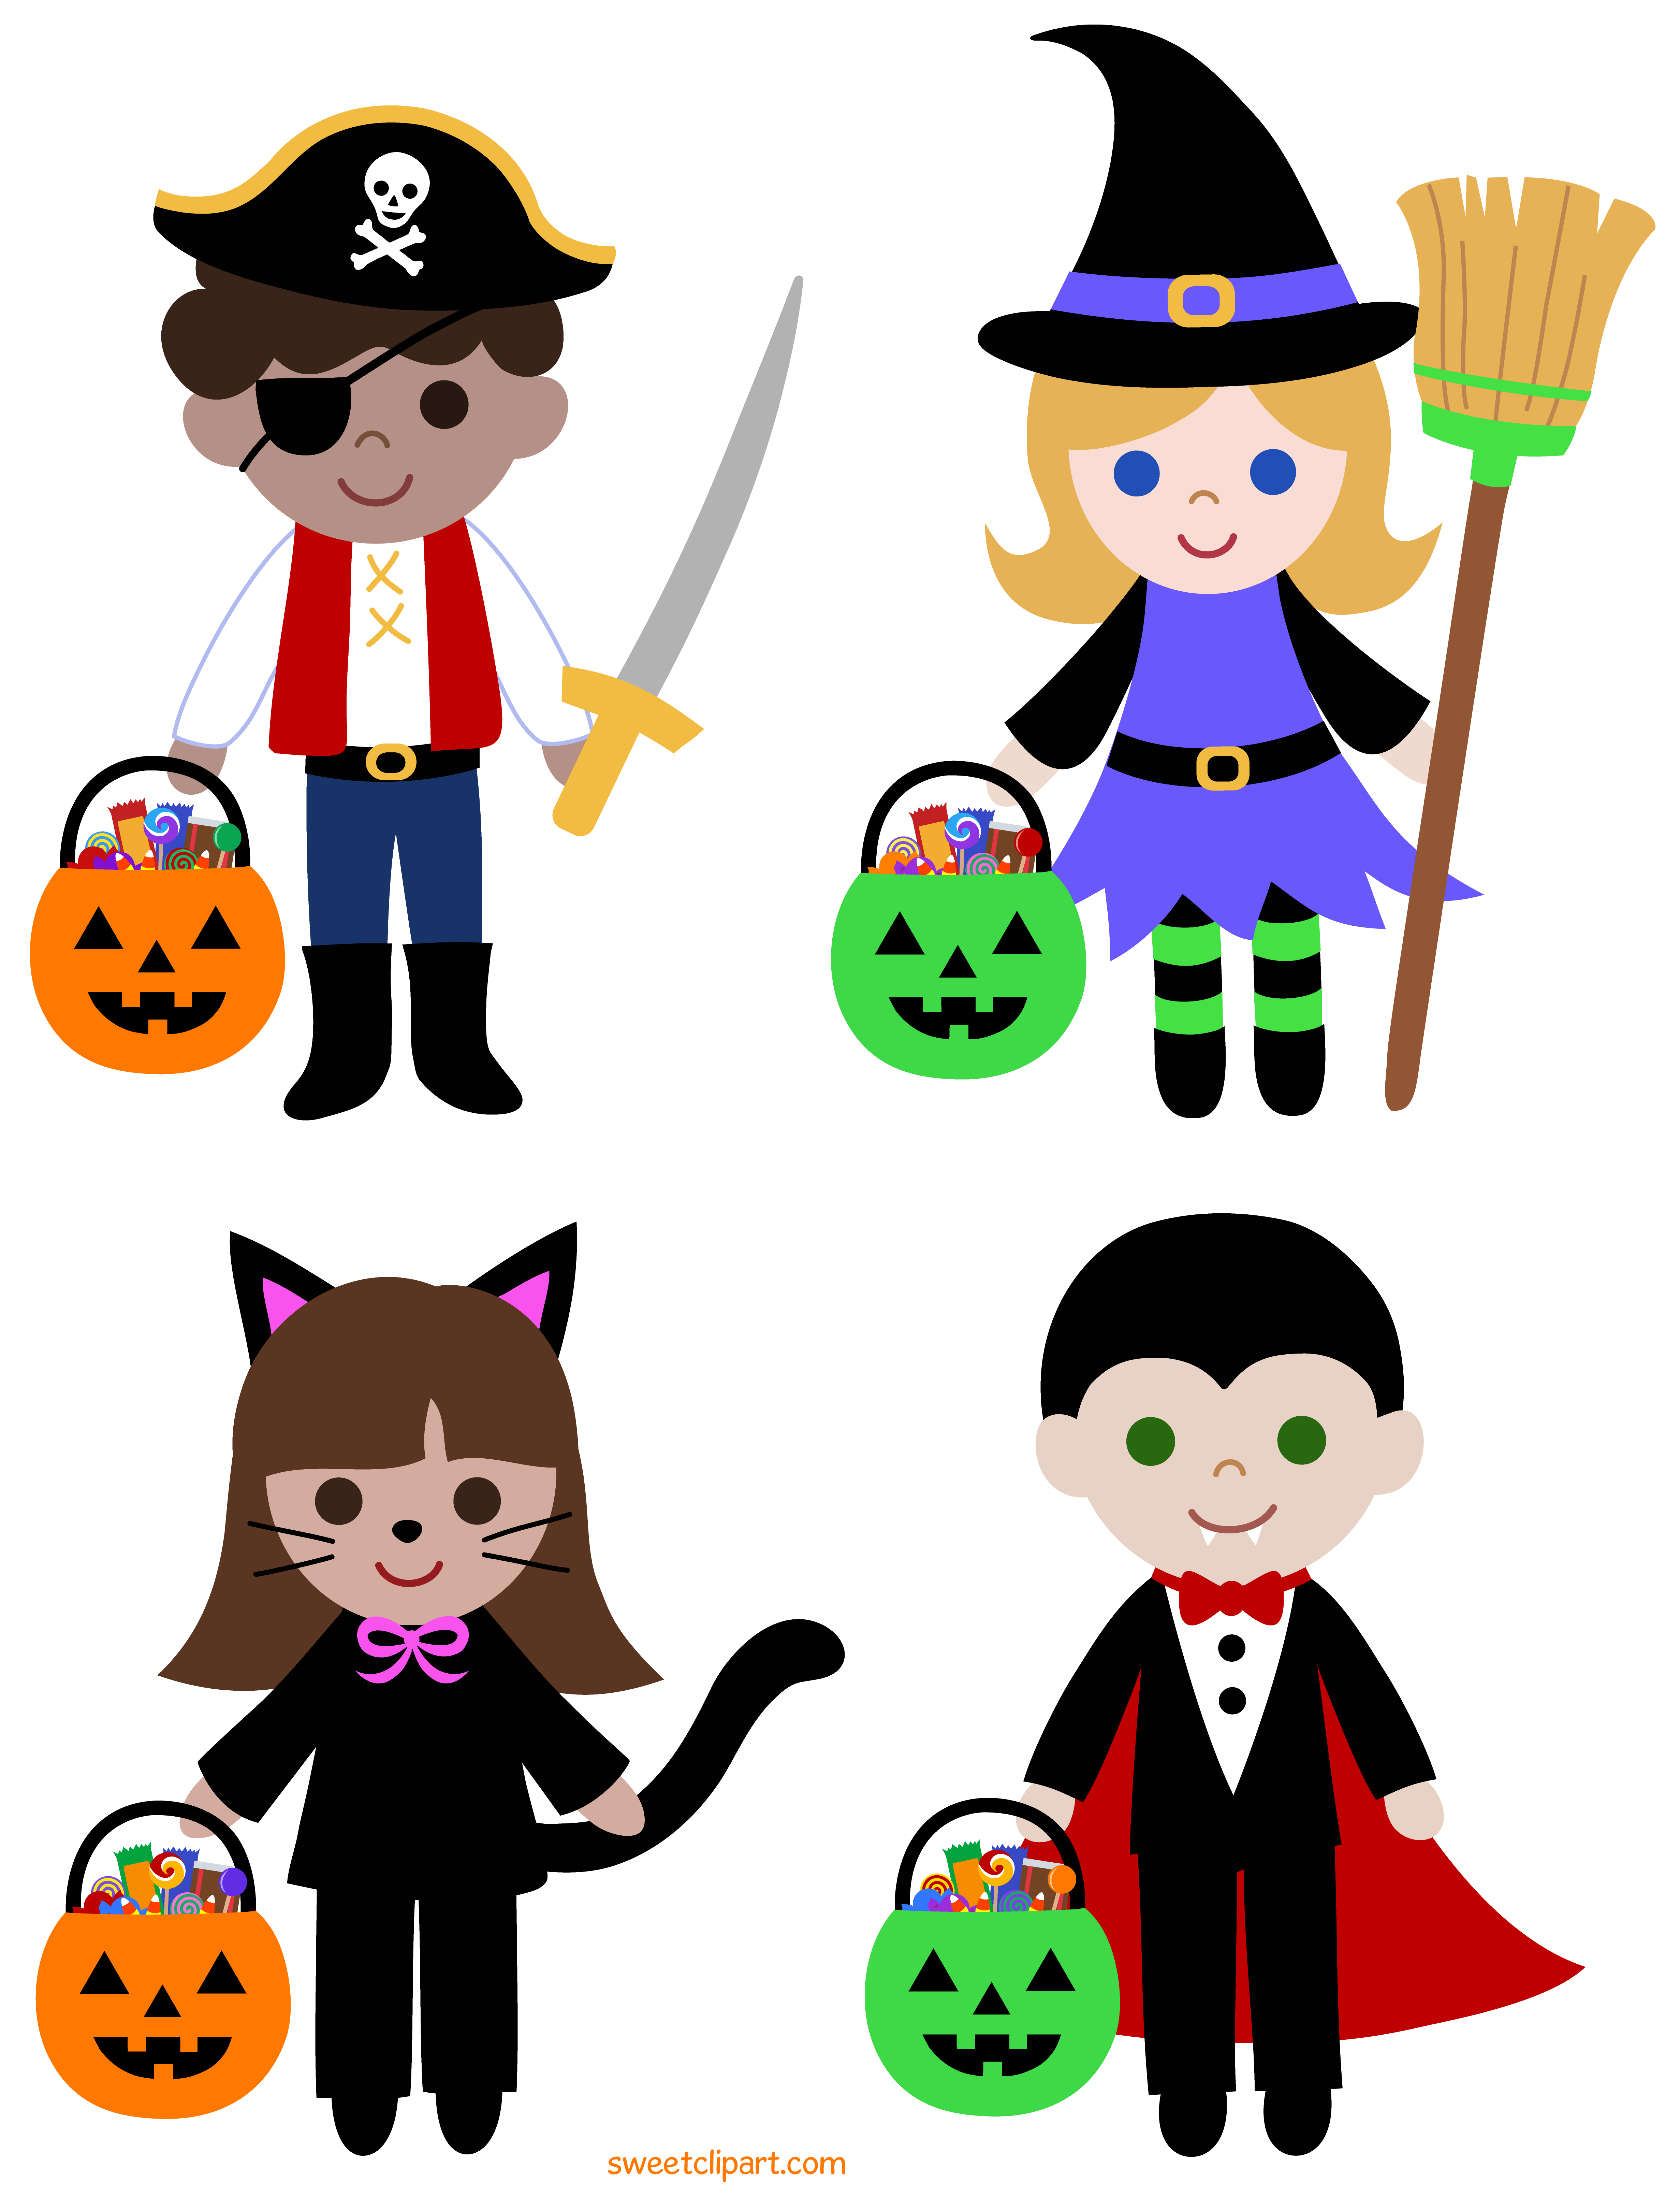 transparent download Kids trick or treating clipart. Treat halloween free clip